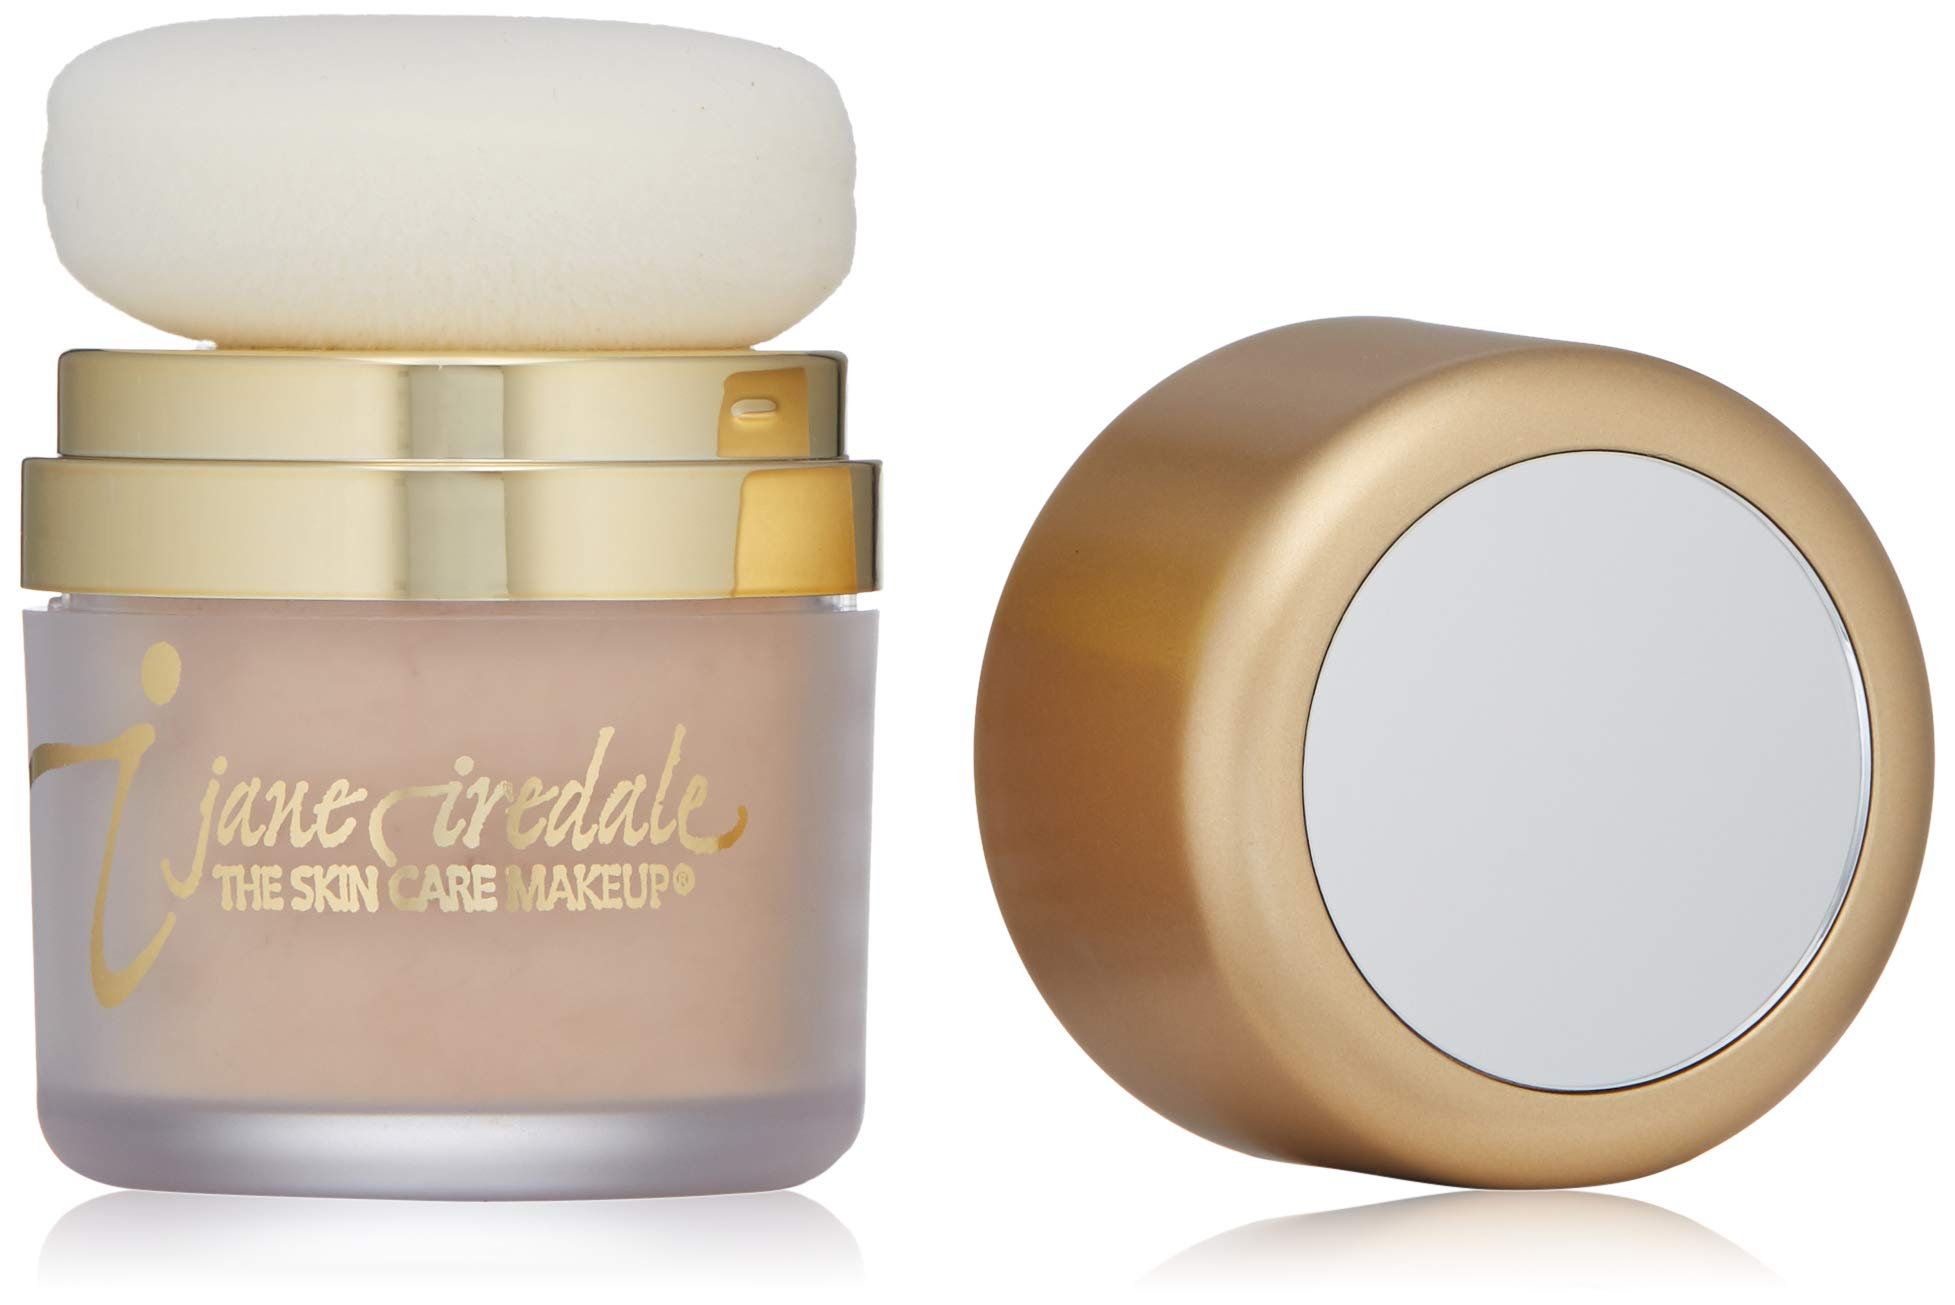 jane iredale Powder-Me SPF Dry Sunscreen, Nude, 0.62 Oz.